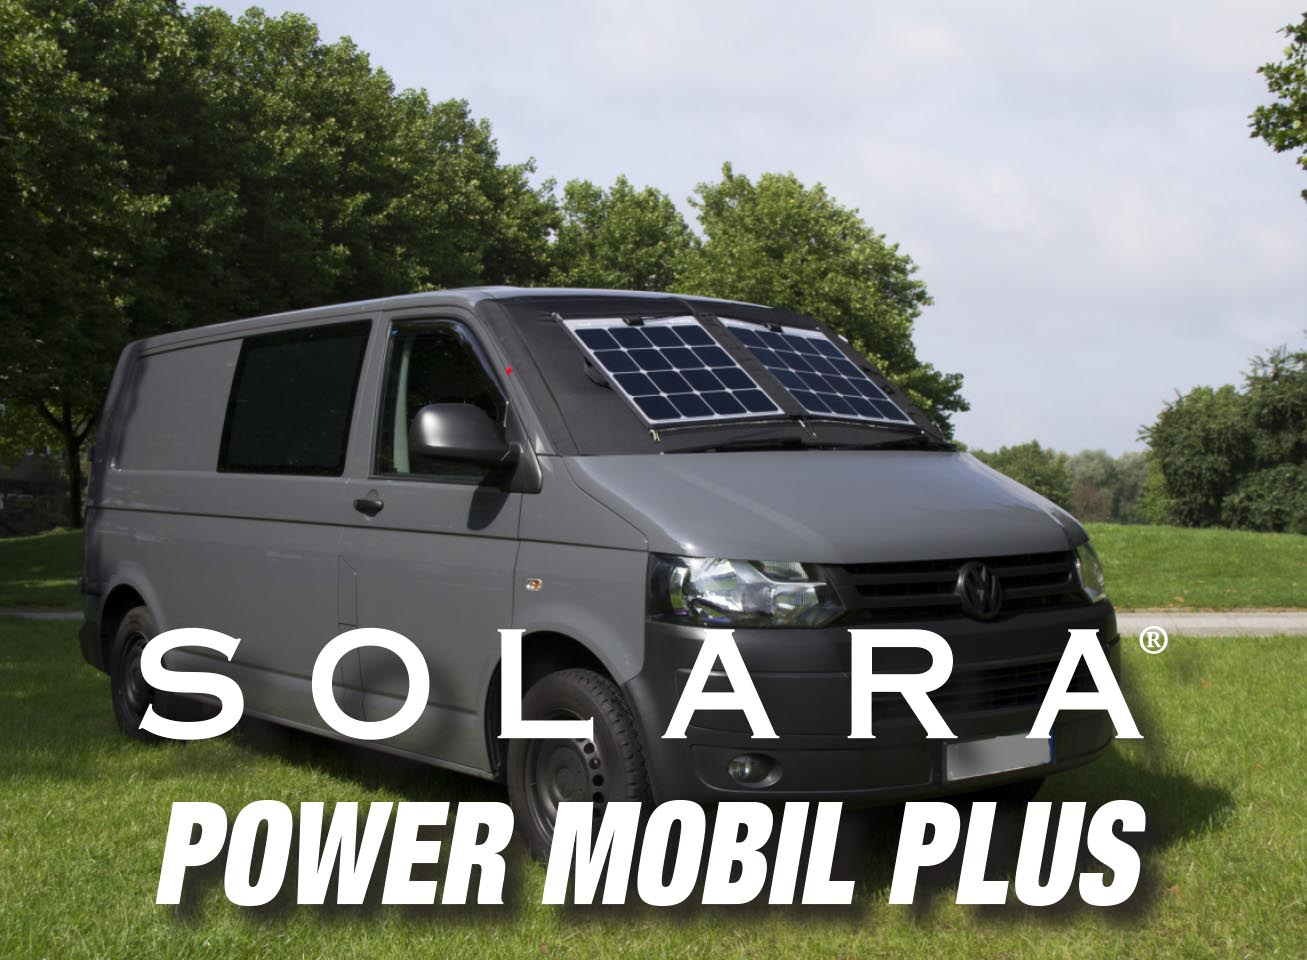 NEW Solara Power Mobil Plus